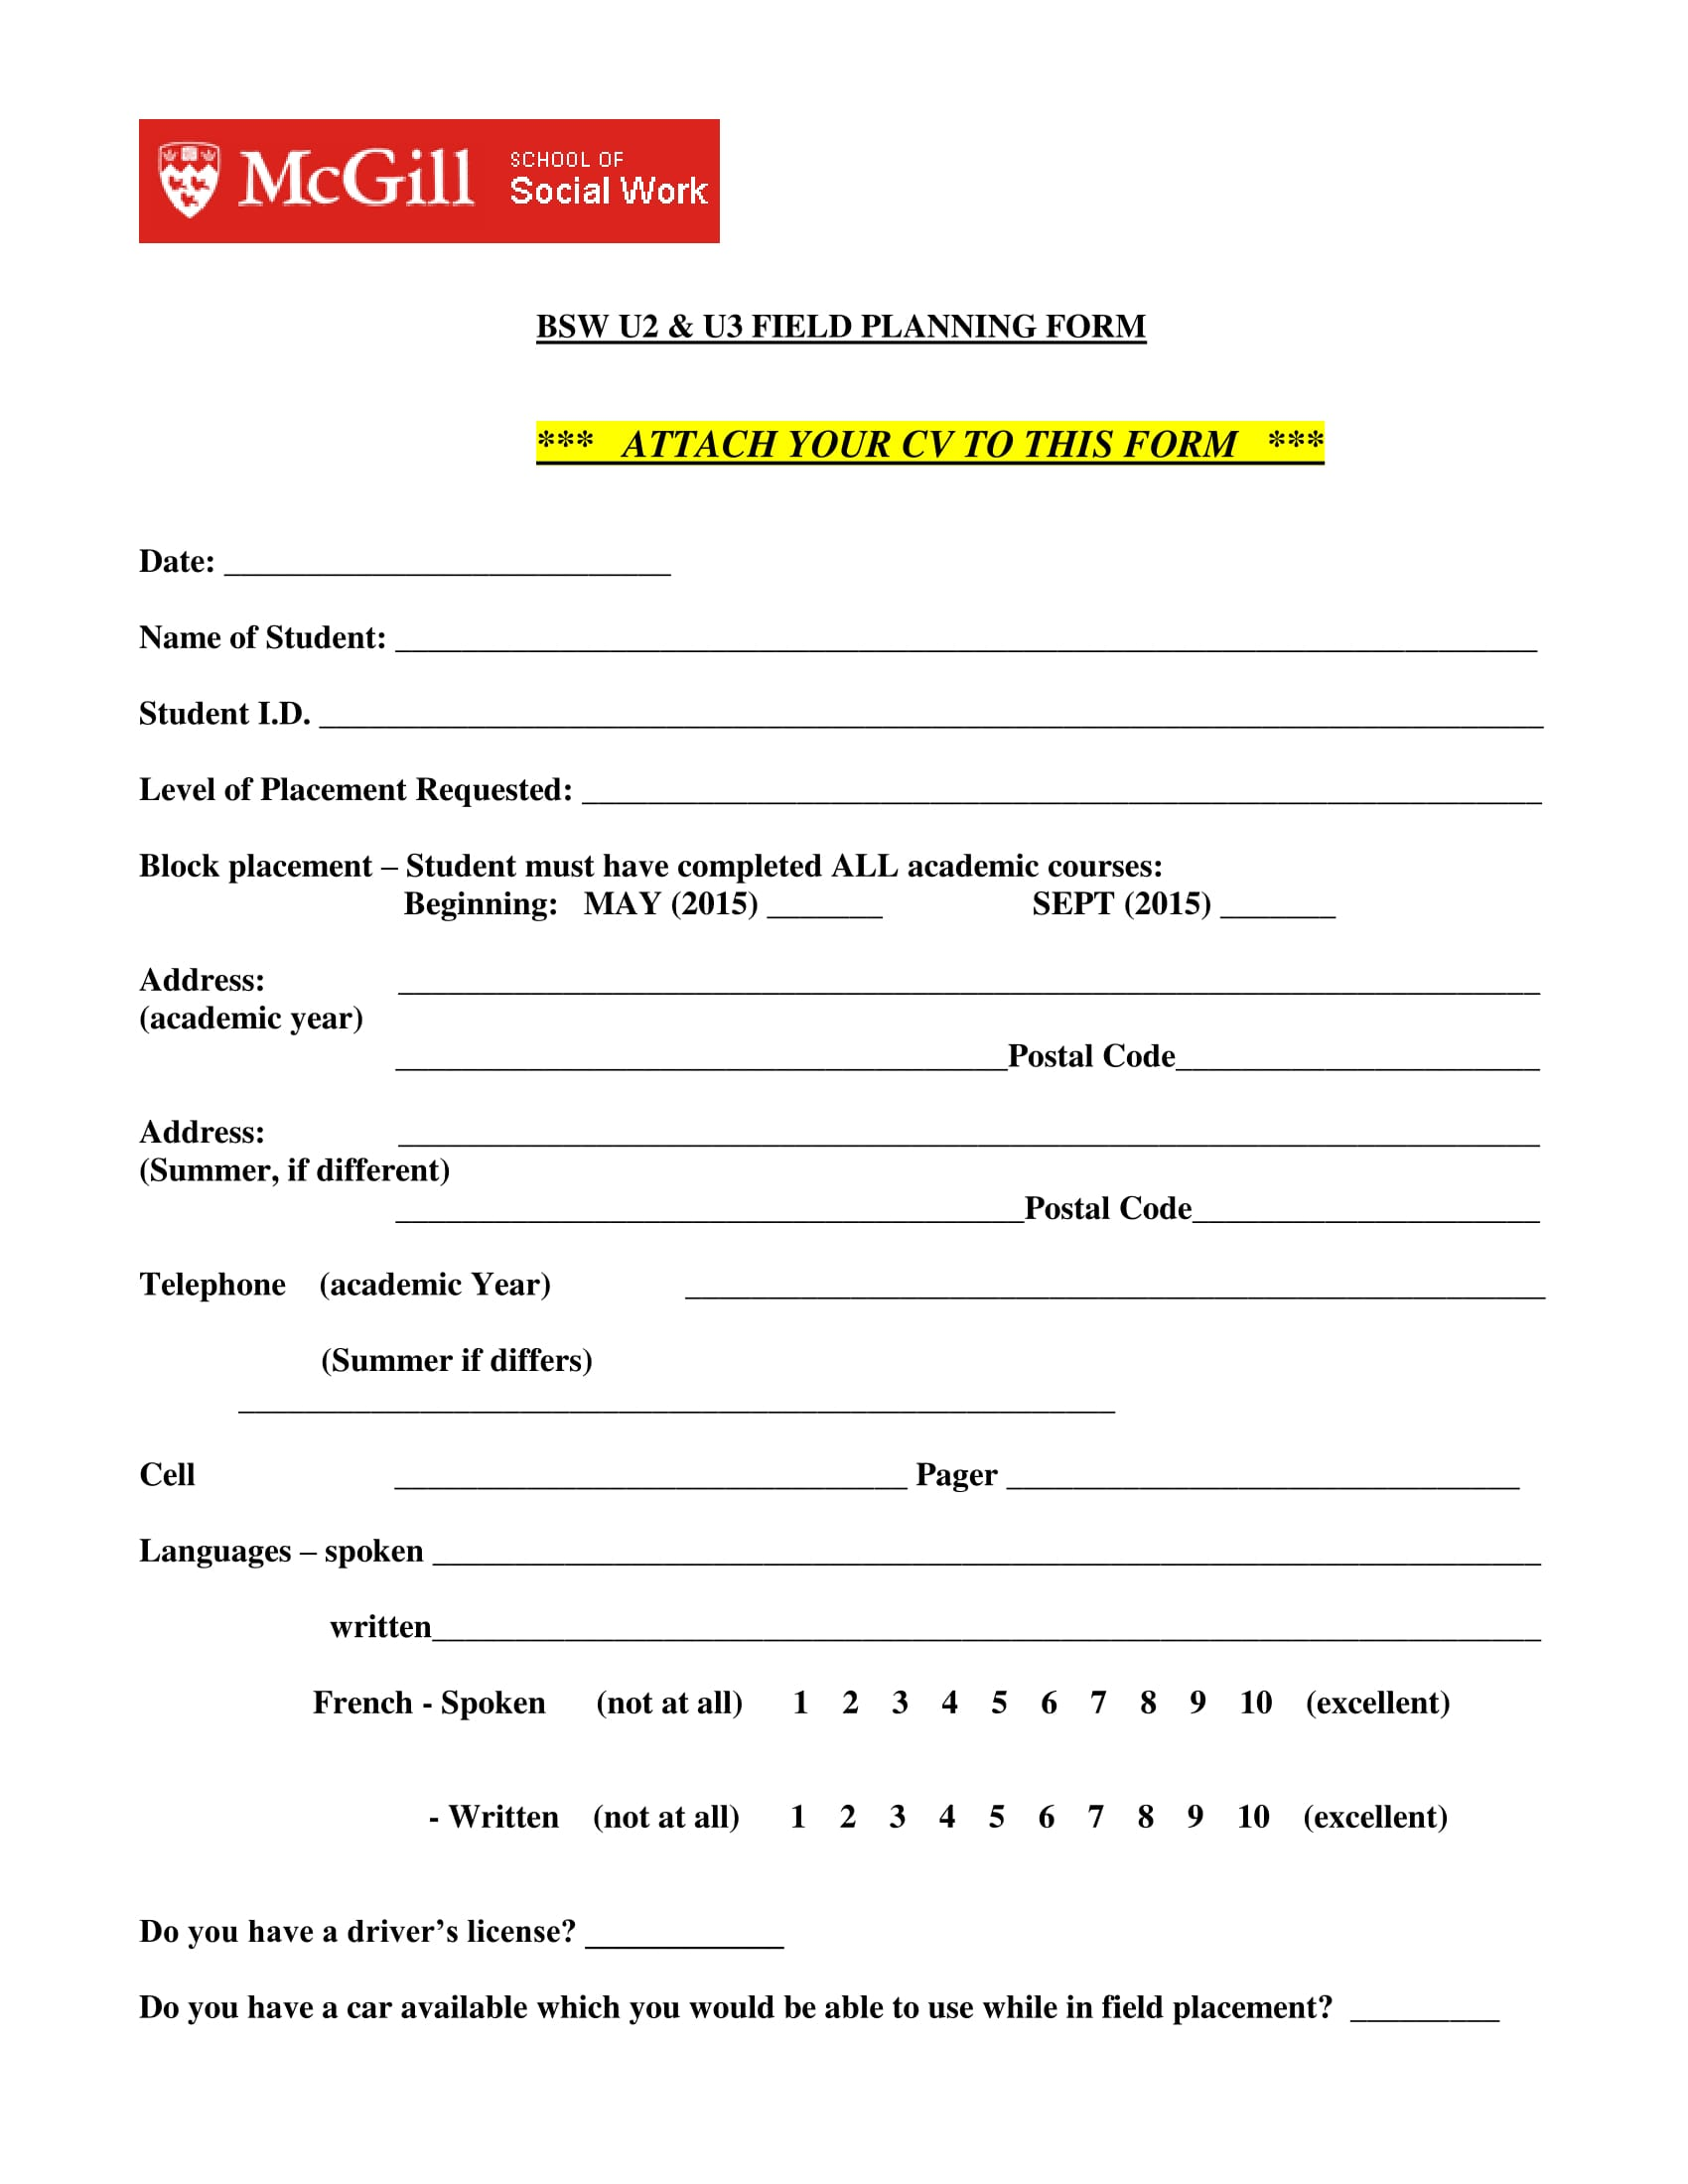 field planning review form 1